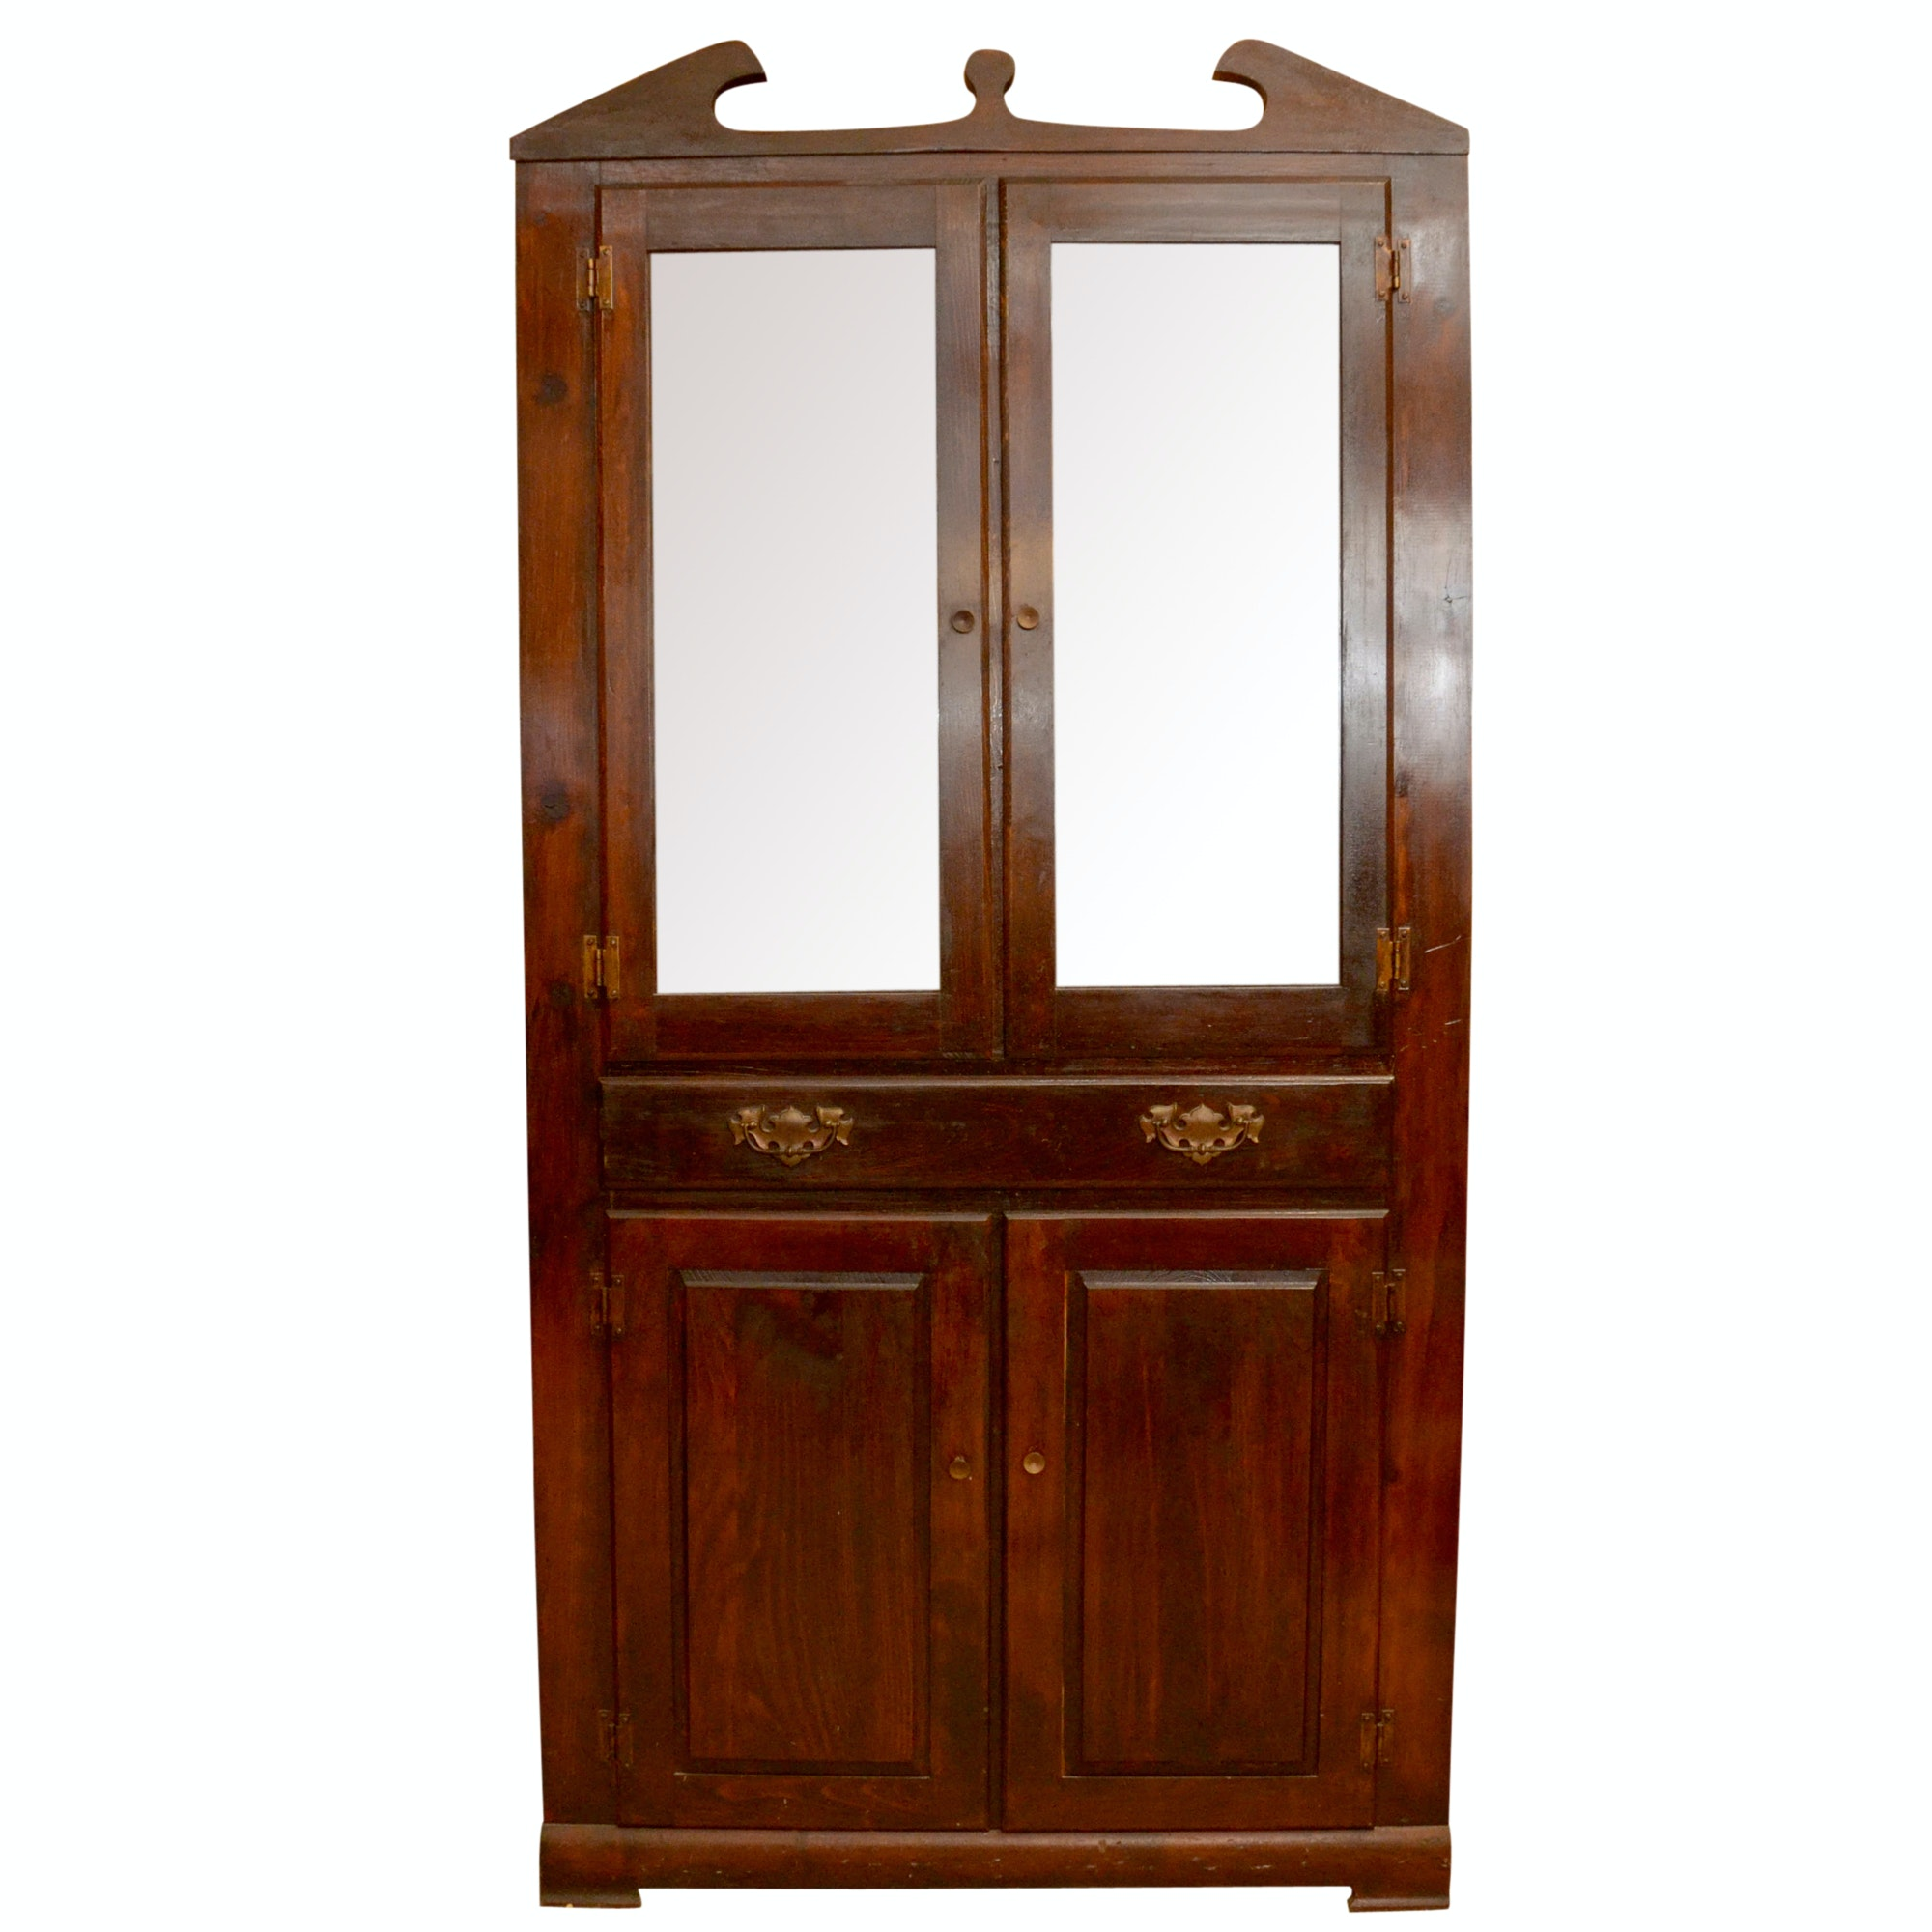 Vintage Federal Style Corner Cabinet by Mastercraft